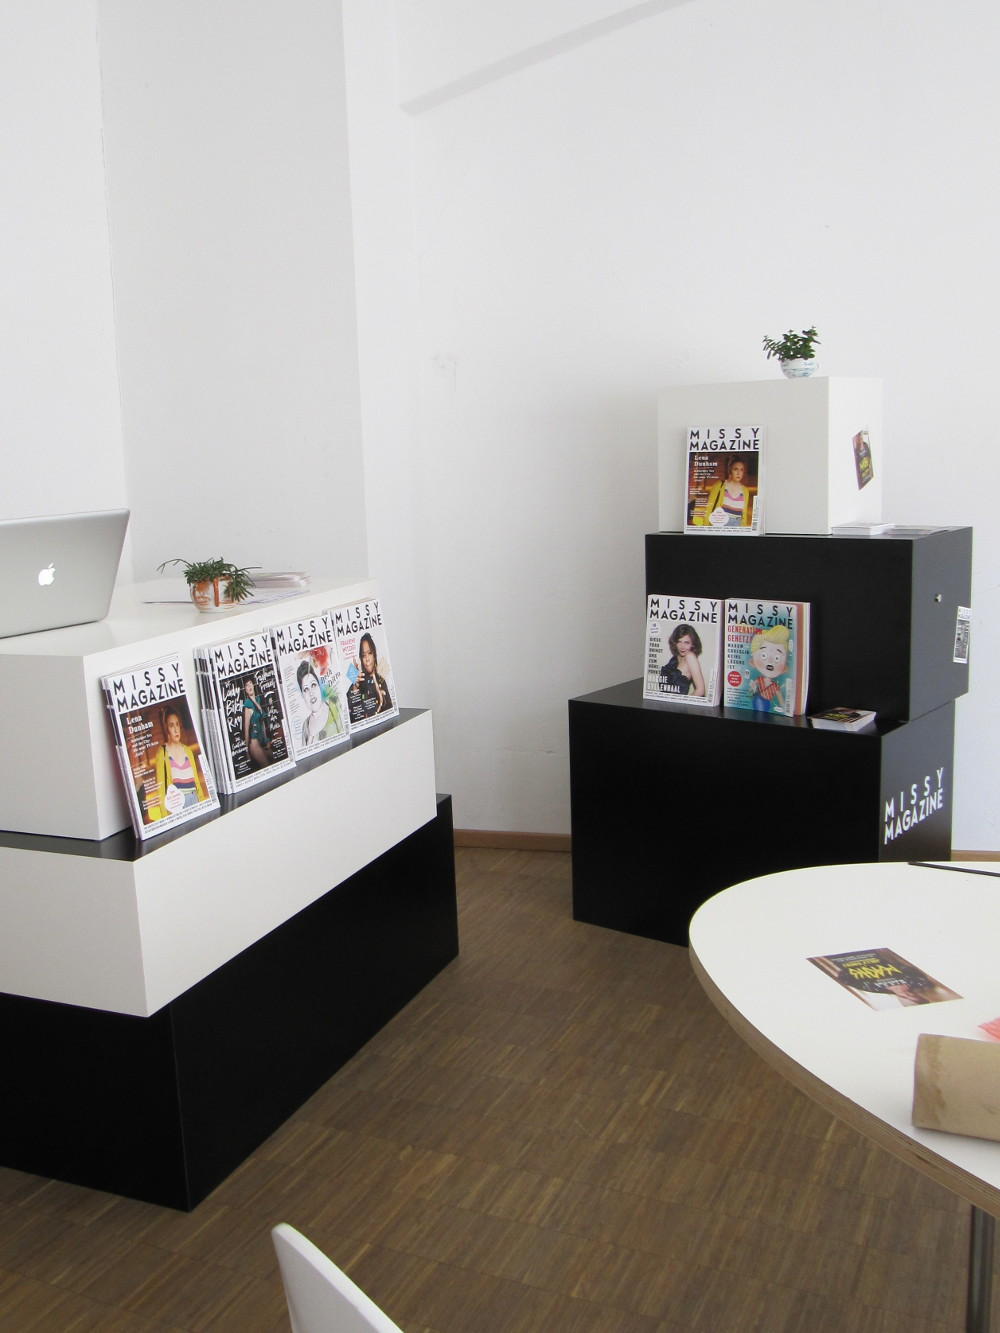 Missy Magazin Stand